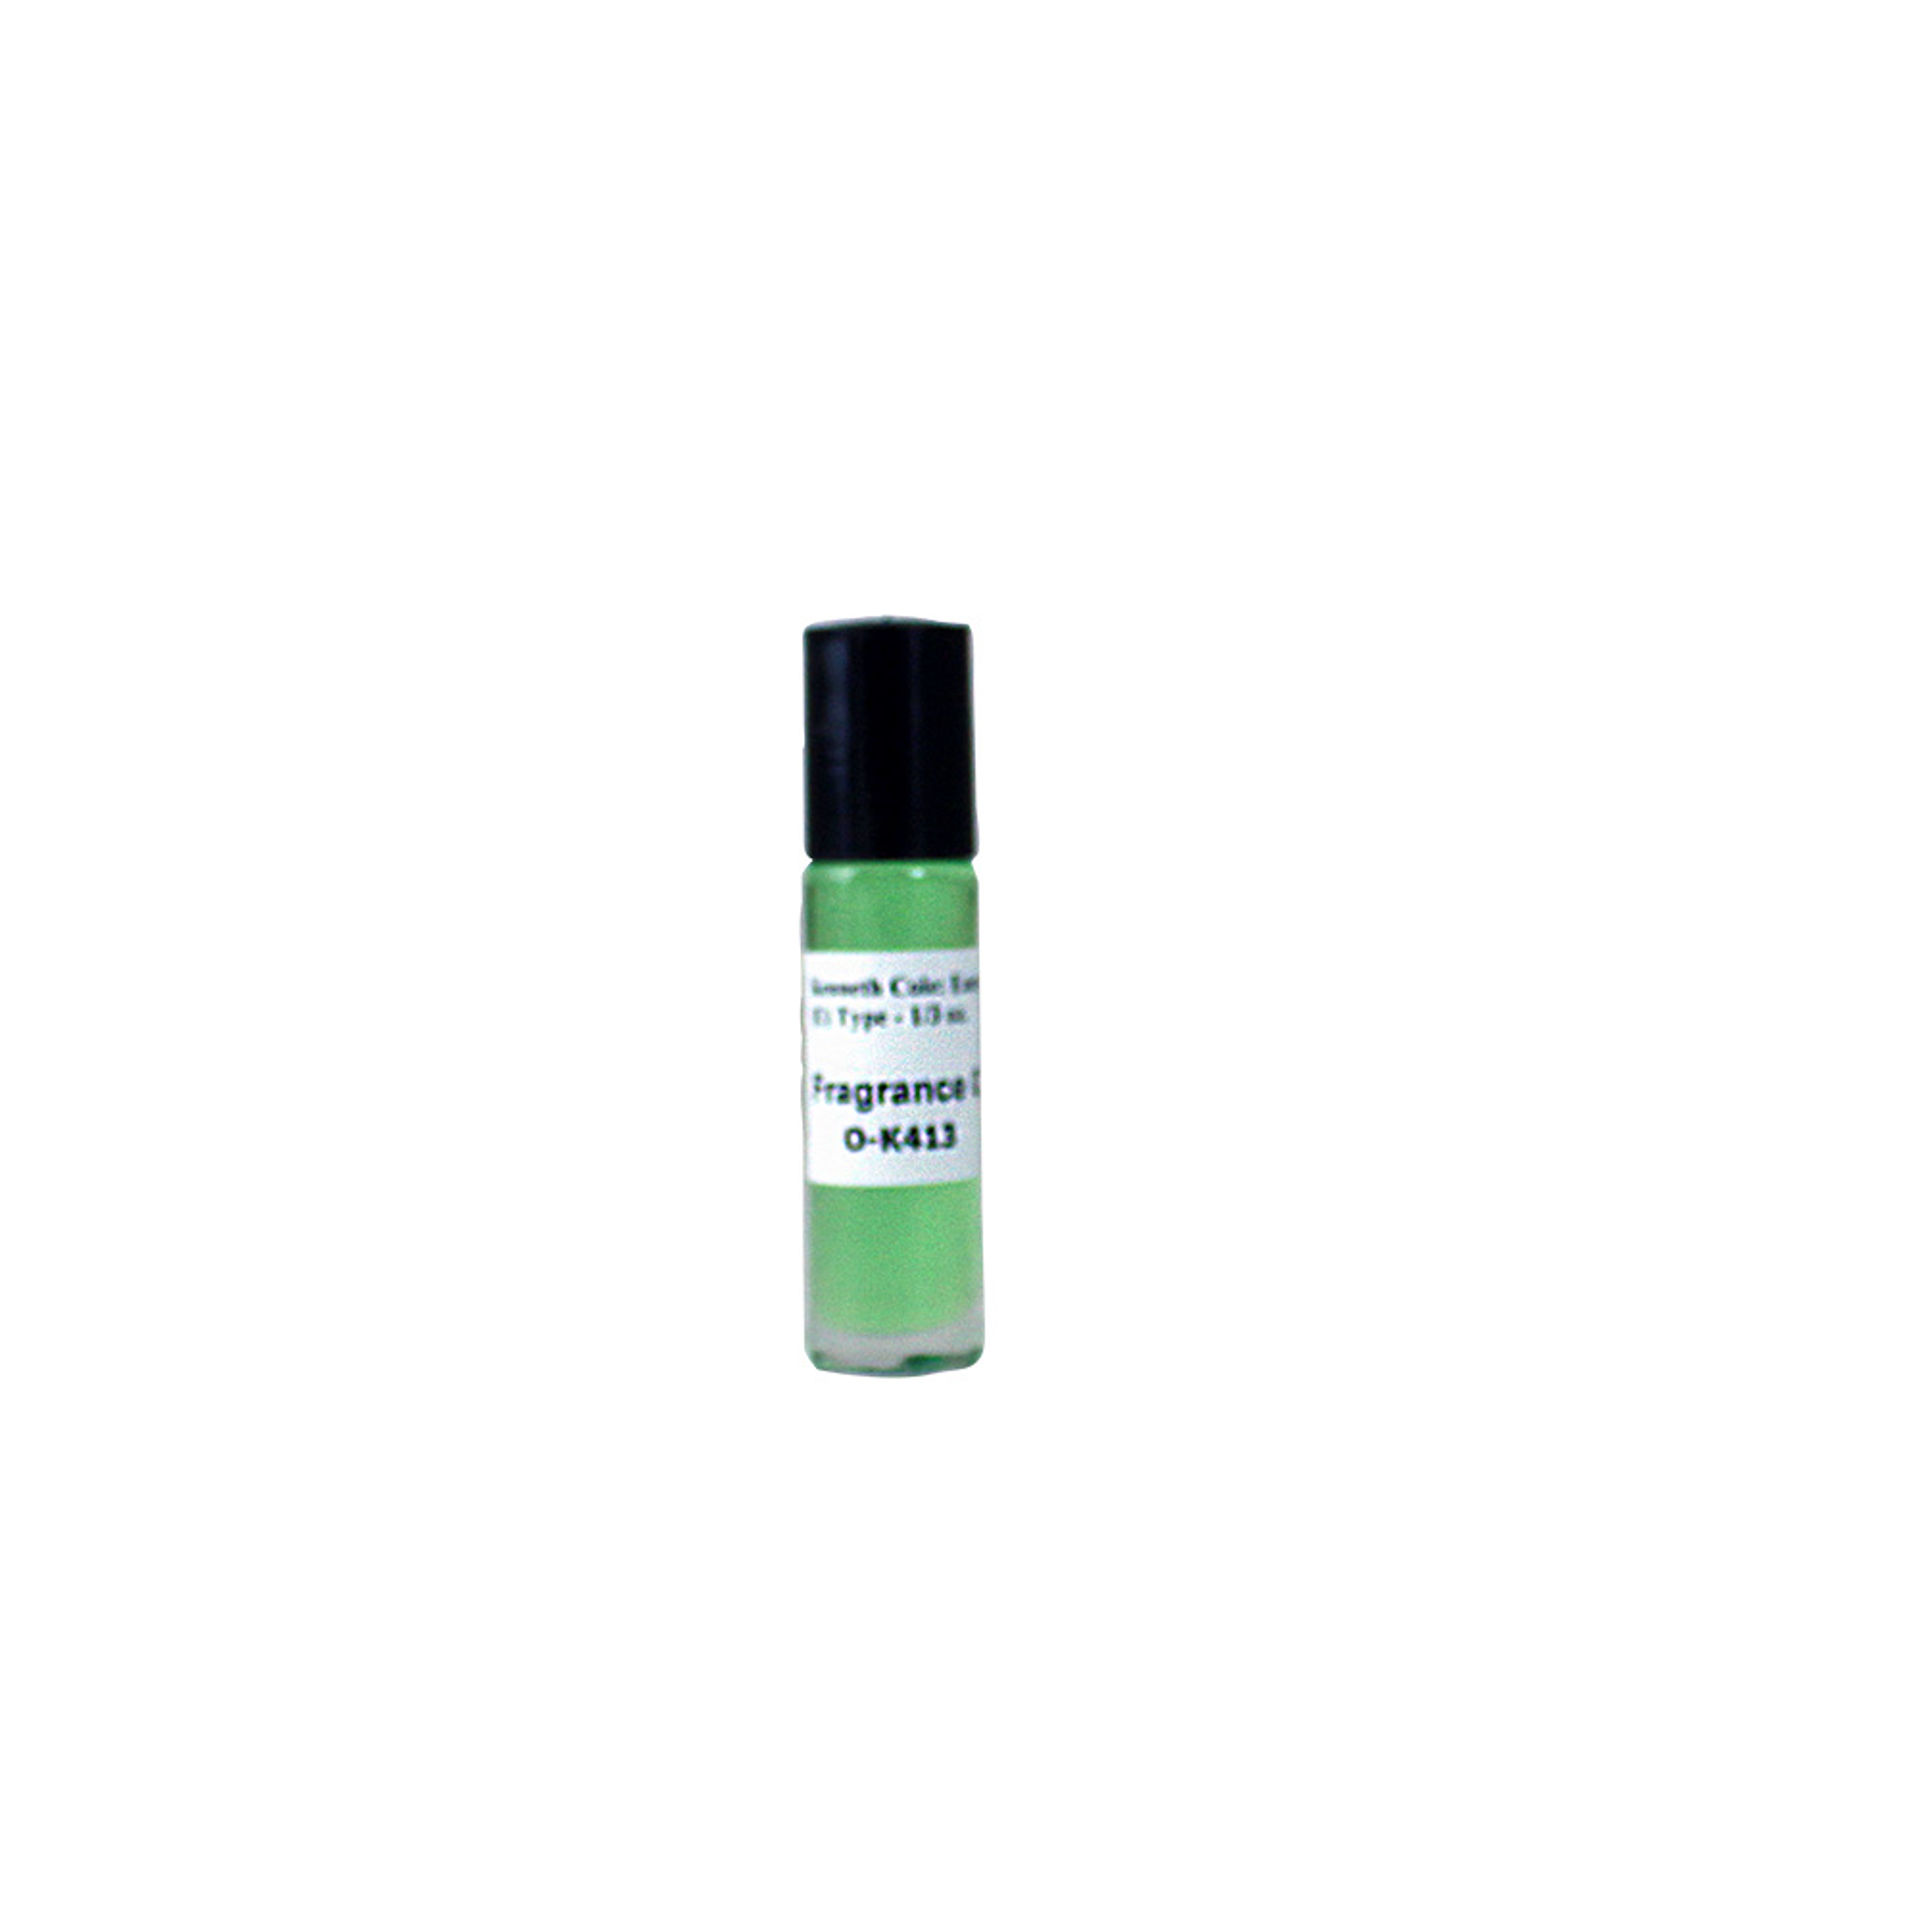 Picture of Kenneth Cole: Energy (U) Type - 1/3 oz.